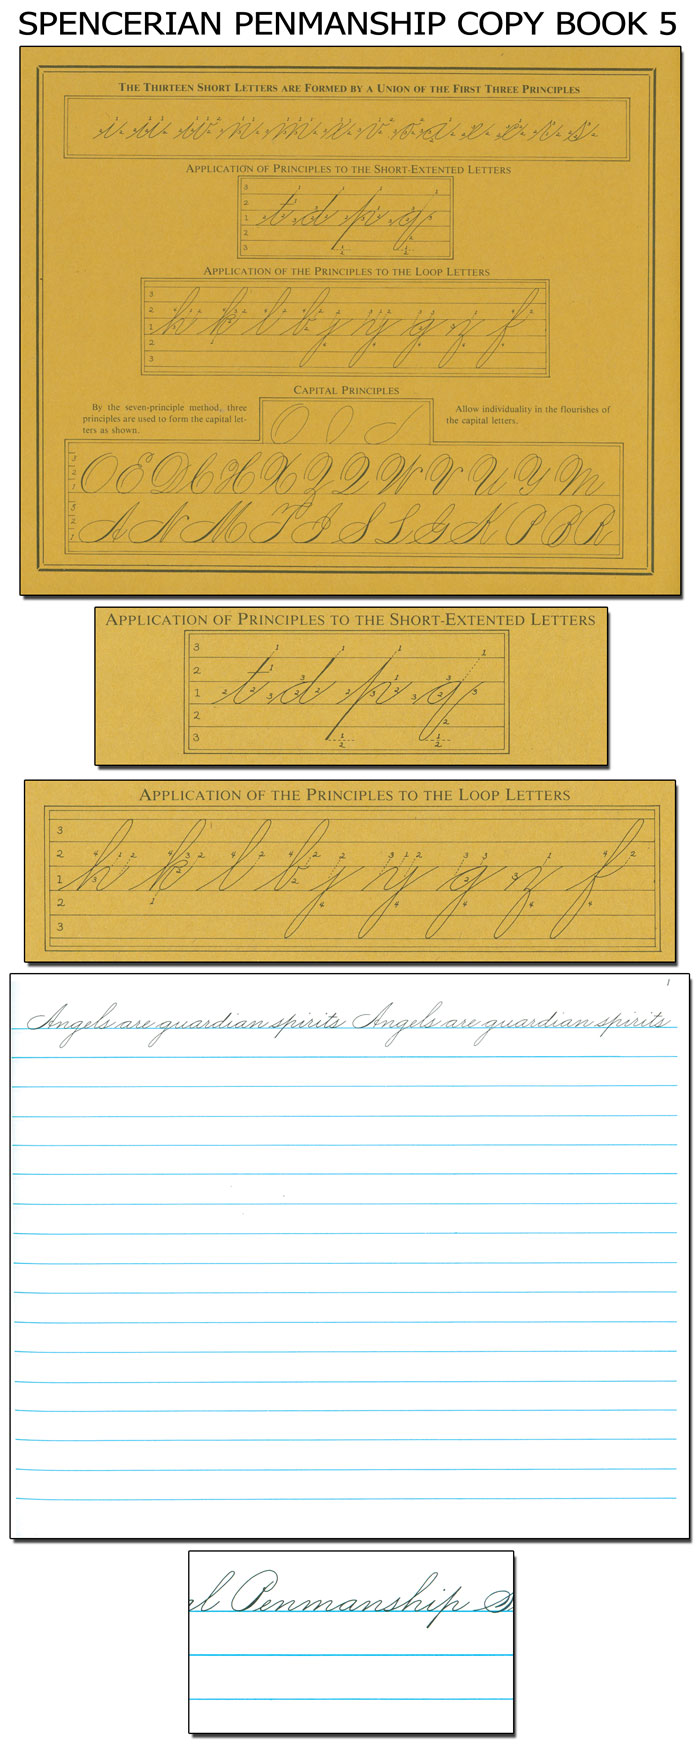 Globe Worksheet in addition Handwriting Printable further Back To School Black Board moreover Old Writings in addition Curlz Mt Font Abc. on free cursive handwriting book